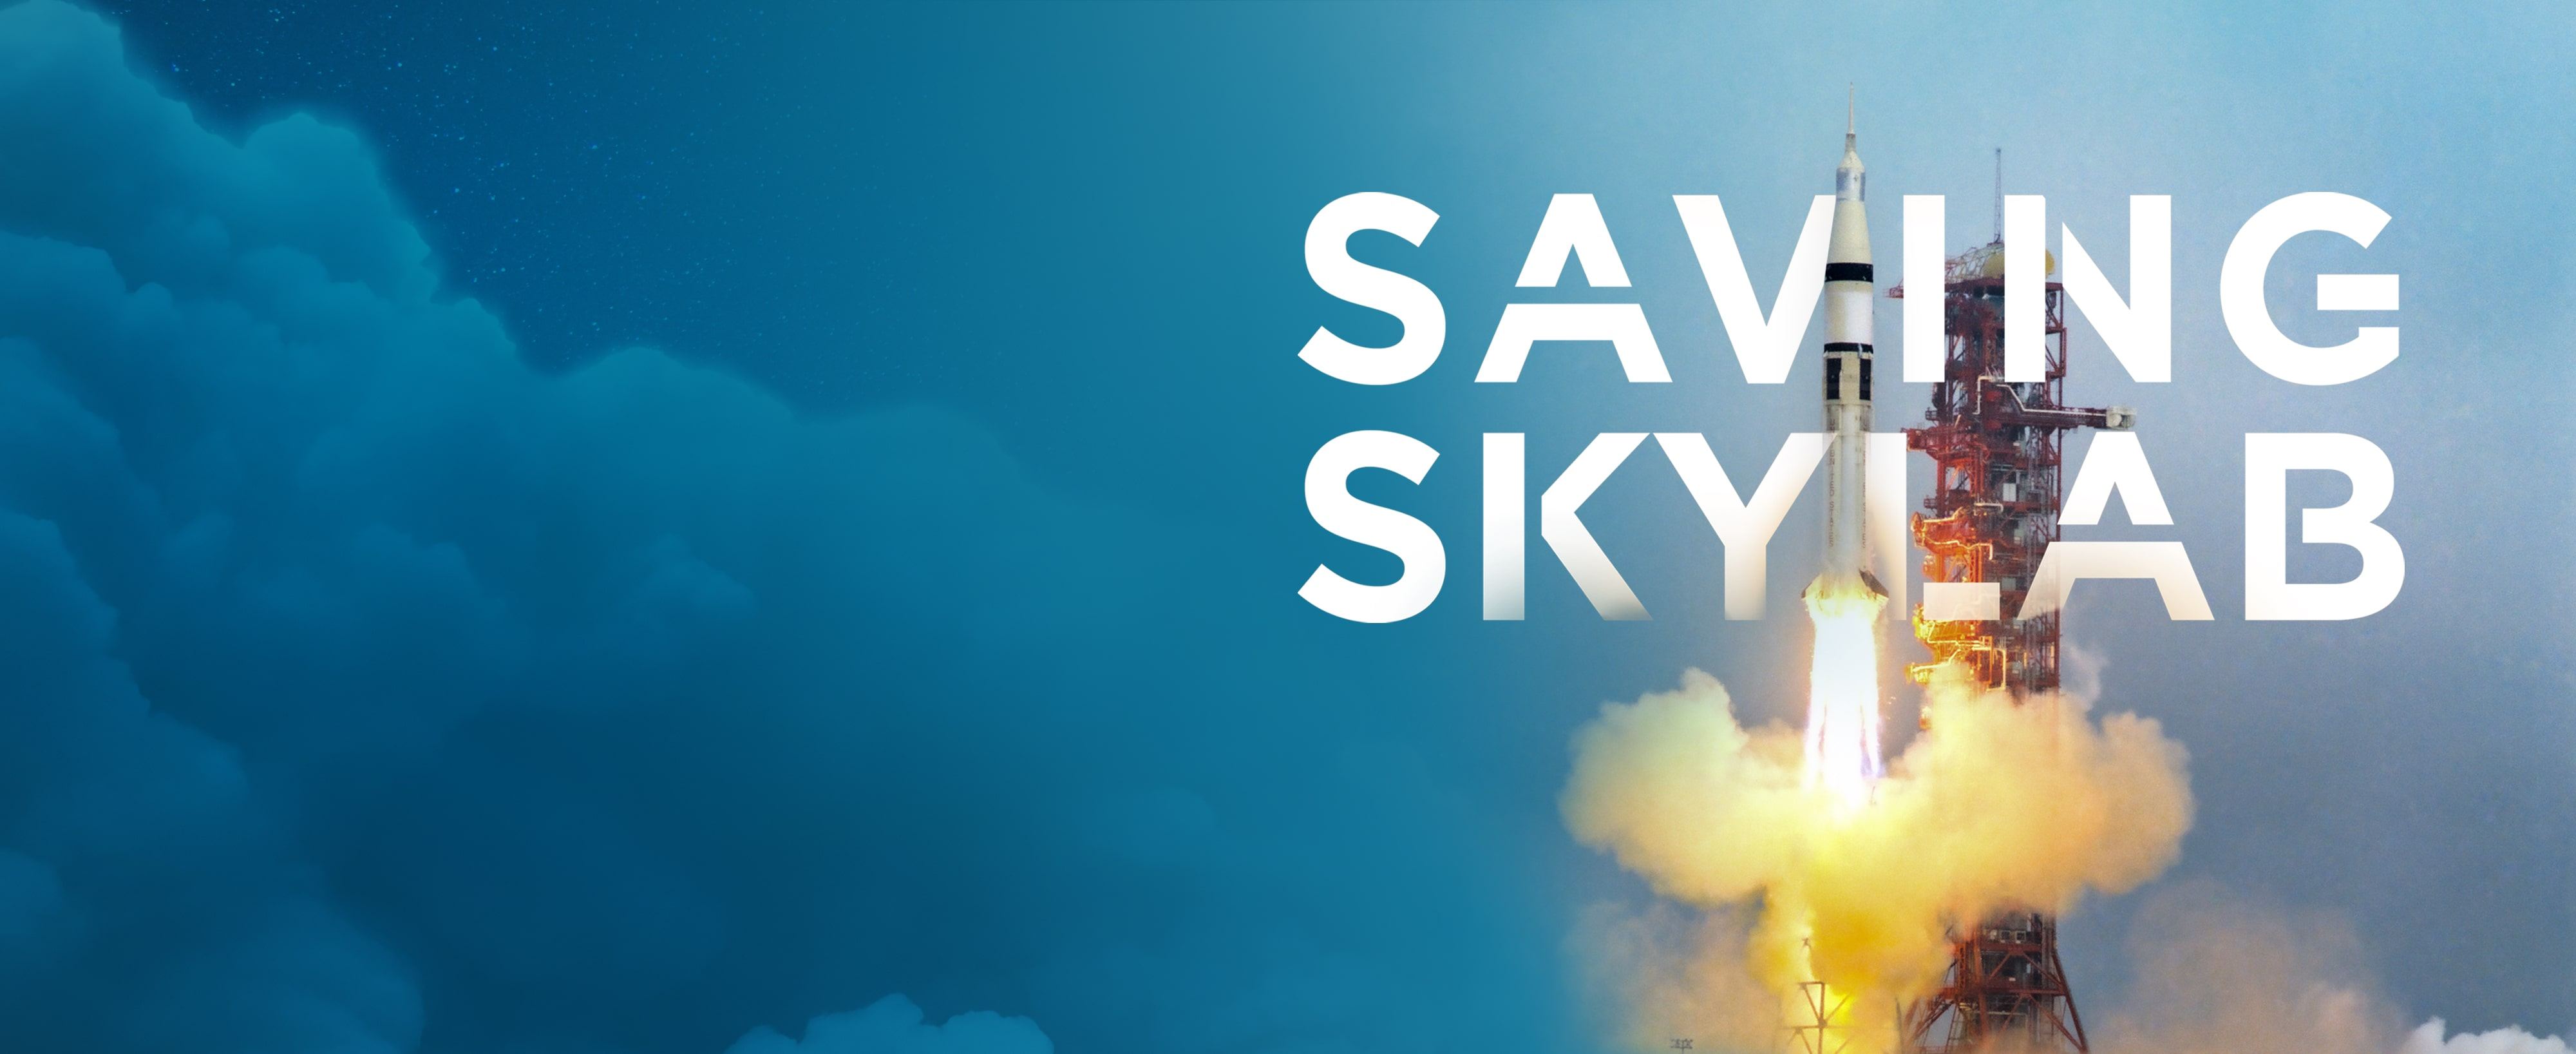 Saving Skylab, a Documentary